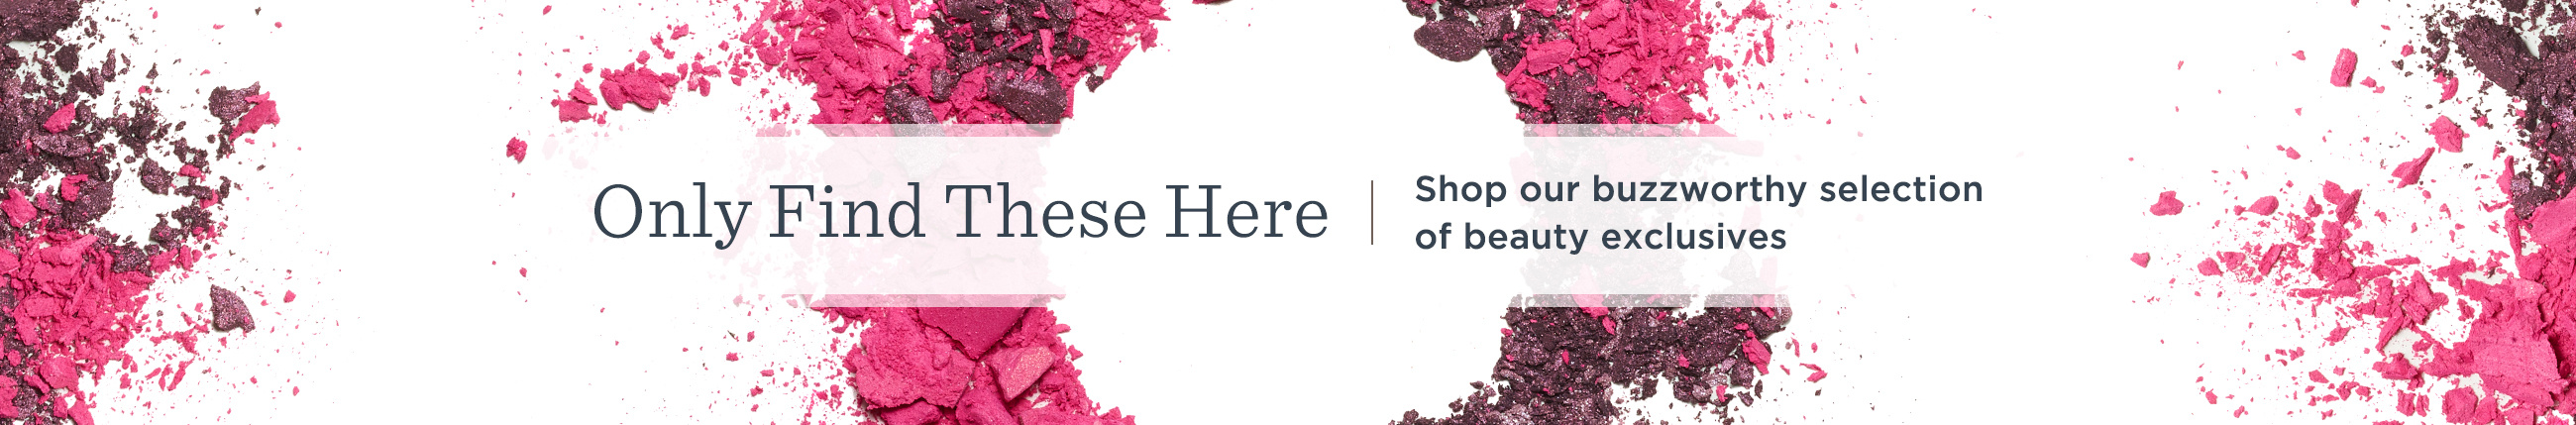 Only Find These Here. Shop our buzzworthy selection of beauty exclusives